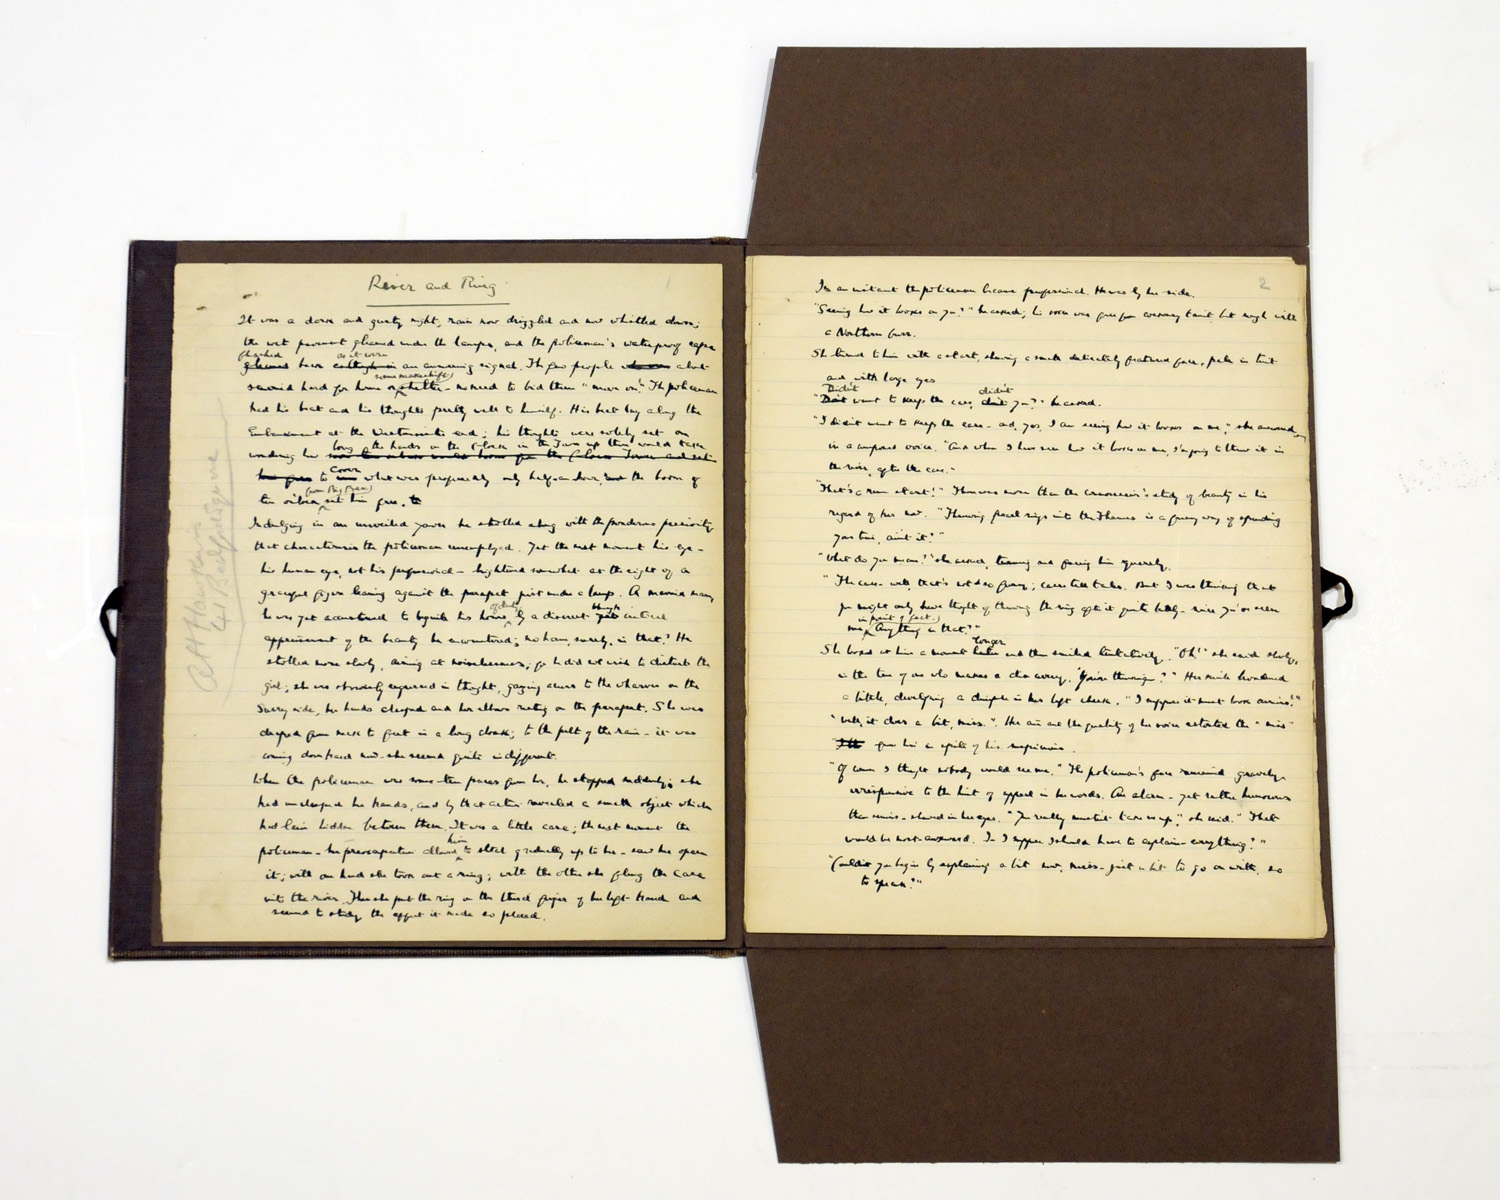 AUTOGRAPH COLLECTION. A collection of six autograph letters and manuscripts by 19th and 20th Century British authors, comprising: